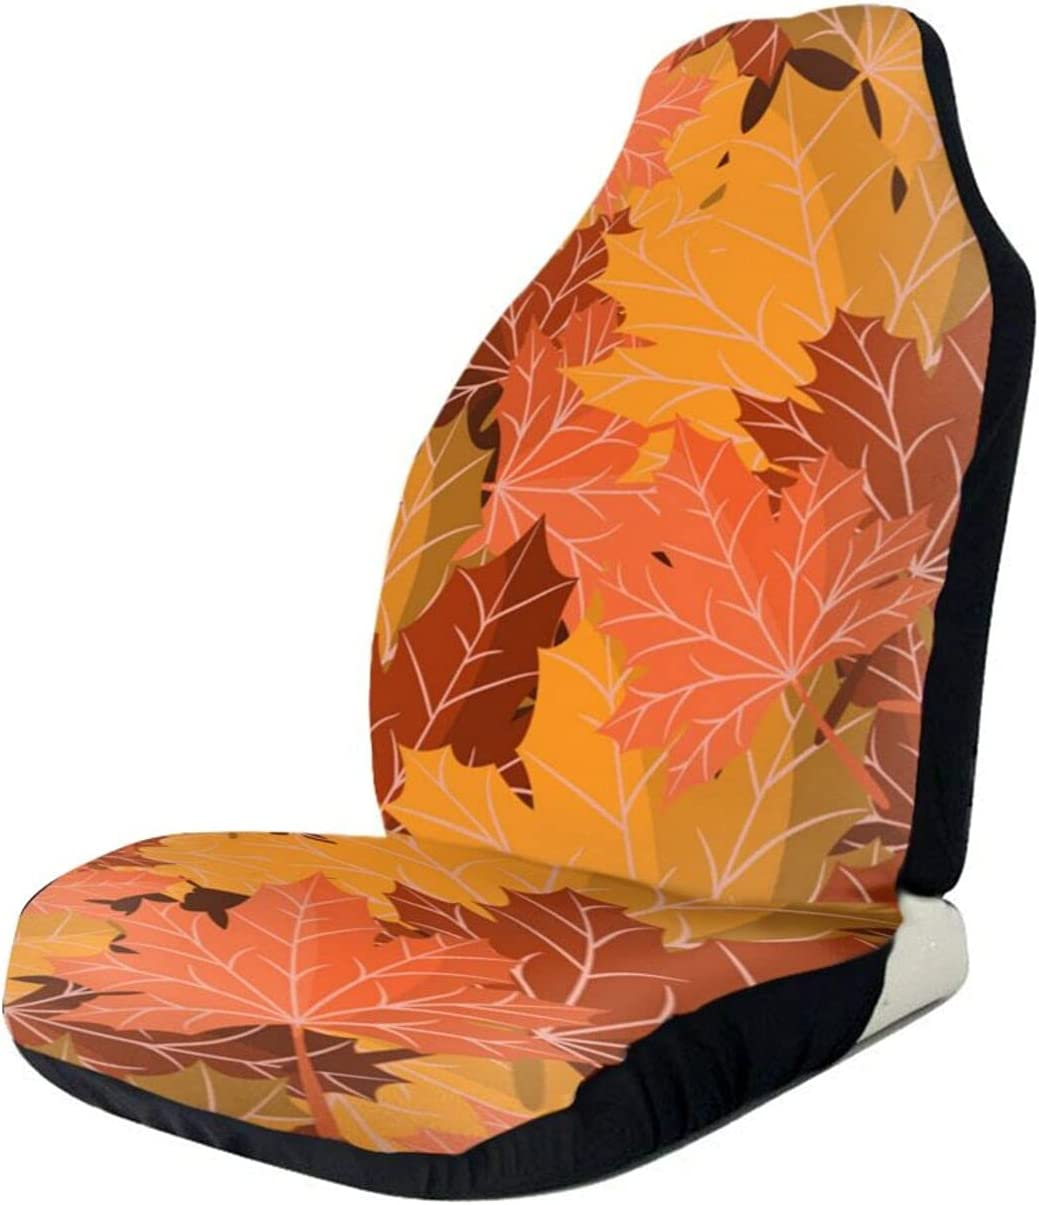 Max 55% OFF Seamless Autumn Leaves Grunge Car Seat Fu Cover Only Max 67% OFF Seats Front